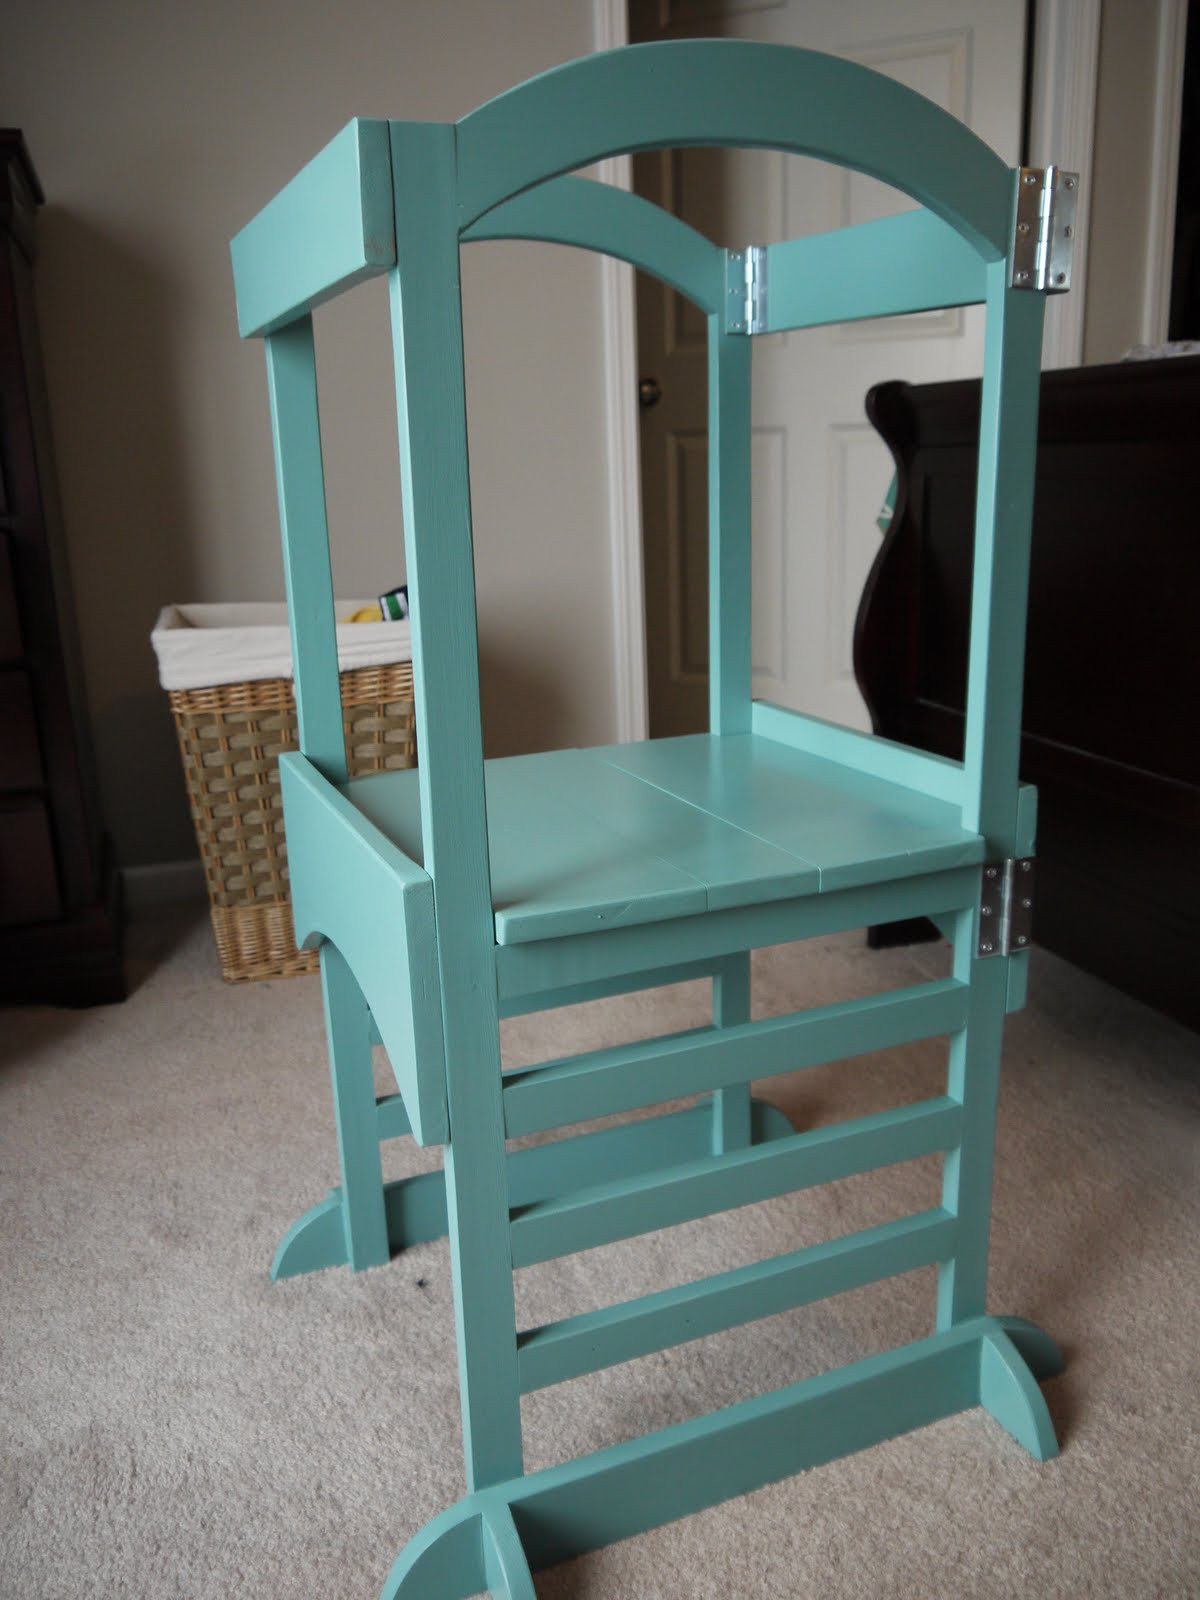 Best ideas about DIY Learning Tower . Save or Pin Ana White Build a The Little Helper Tower Now.